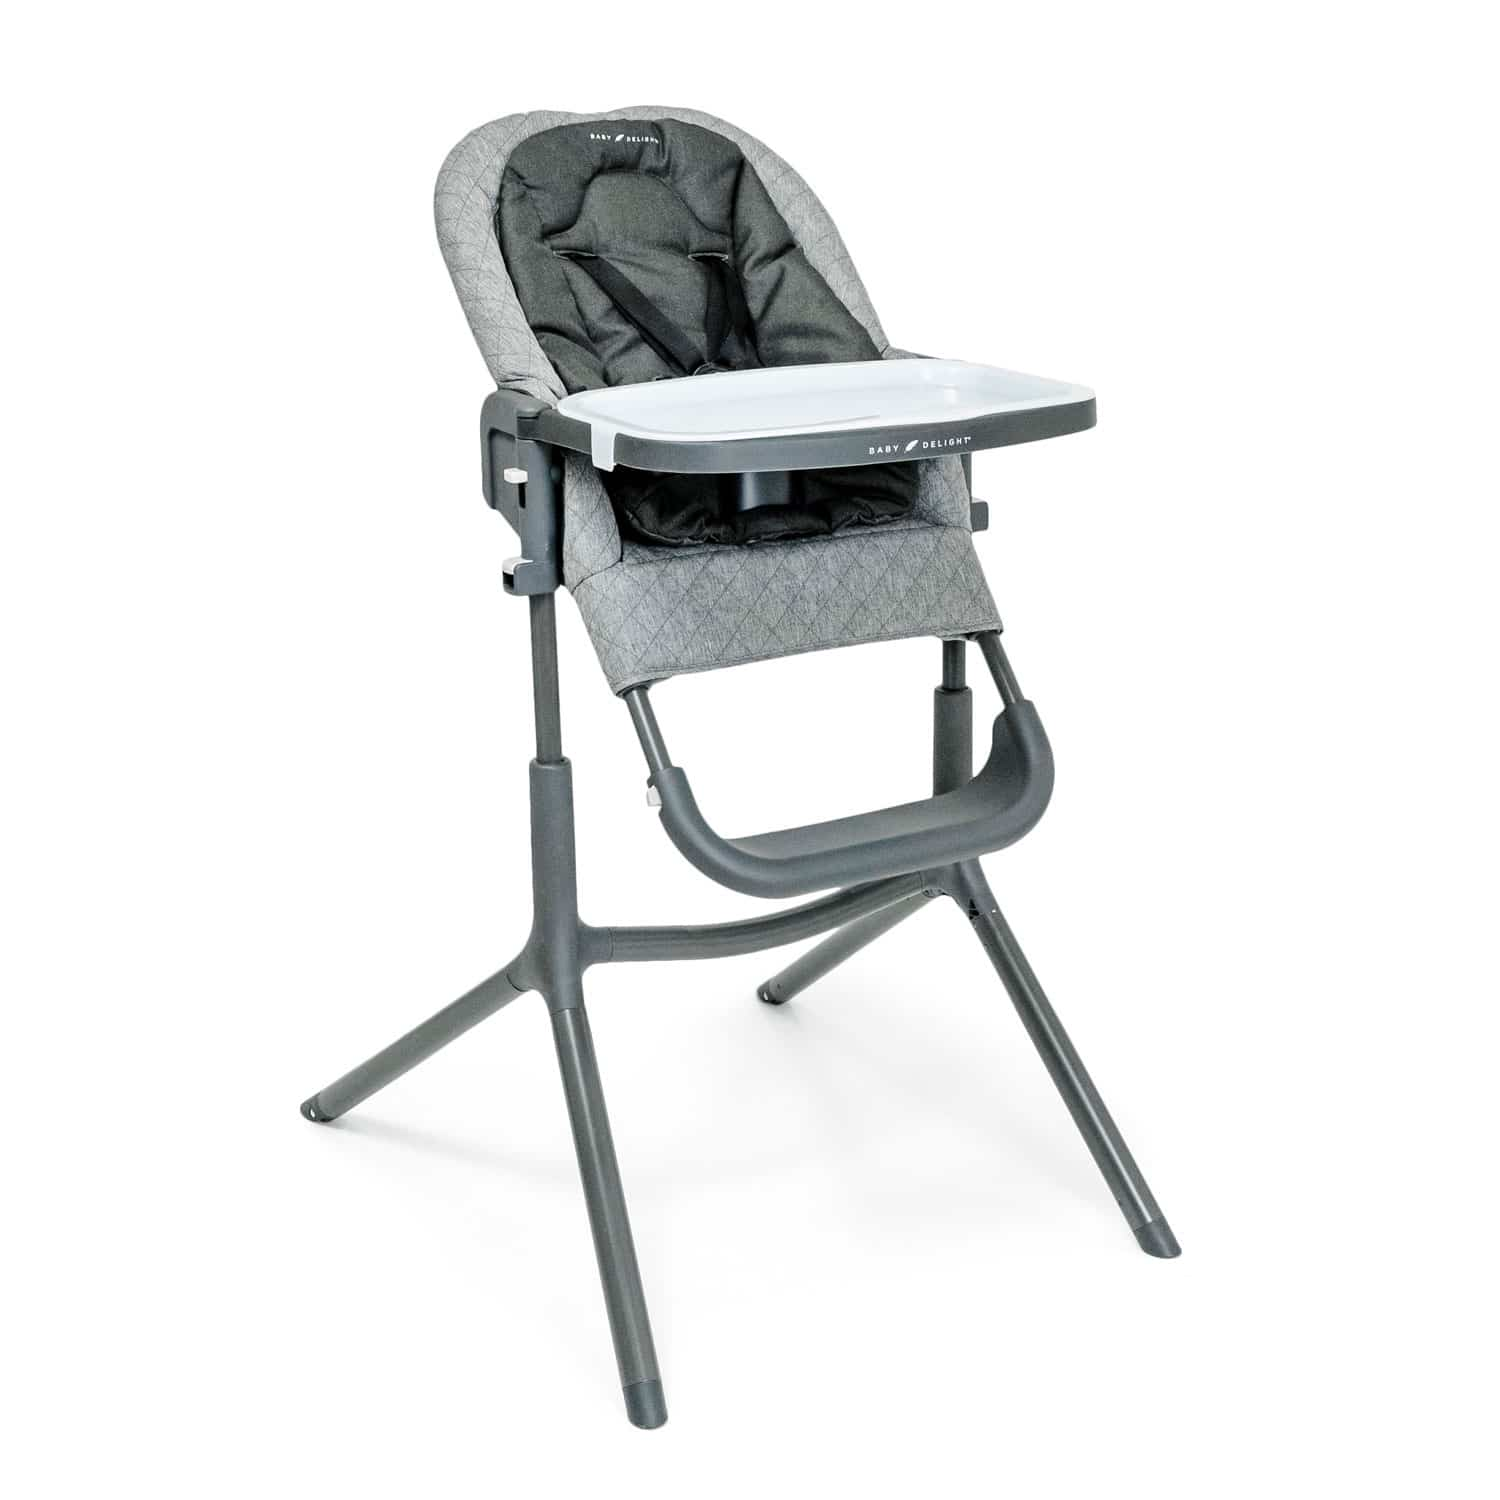 Levo Deluxe Adjustable High Chair image